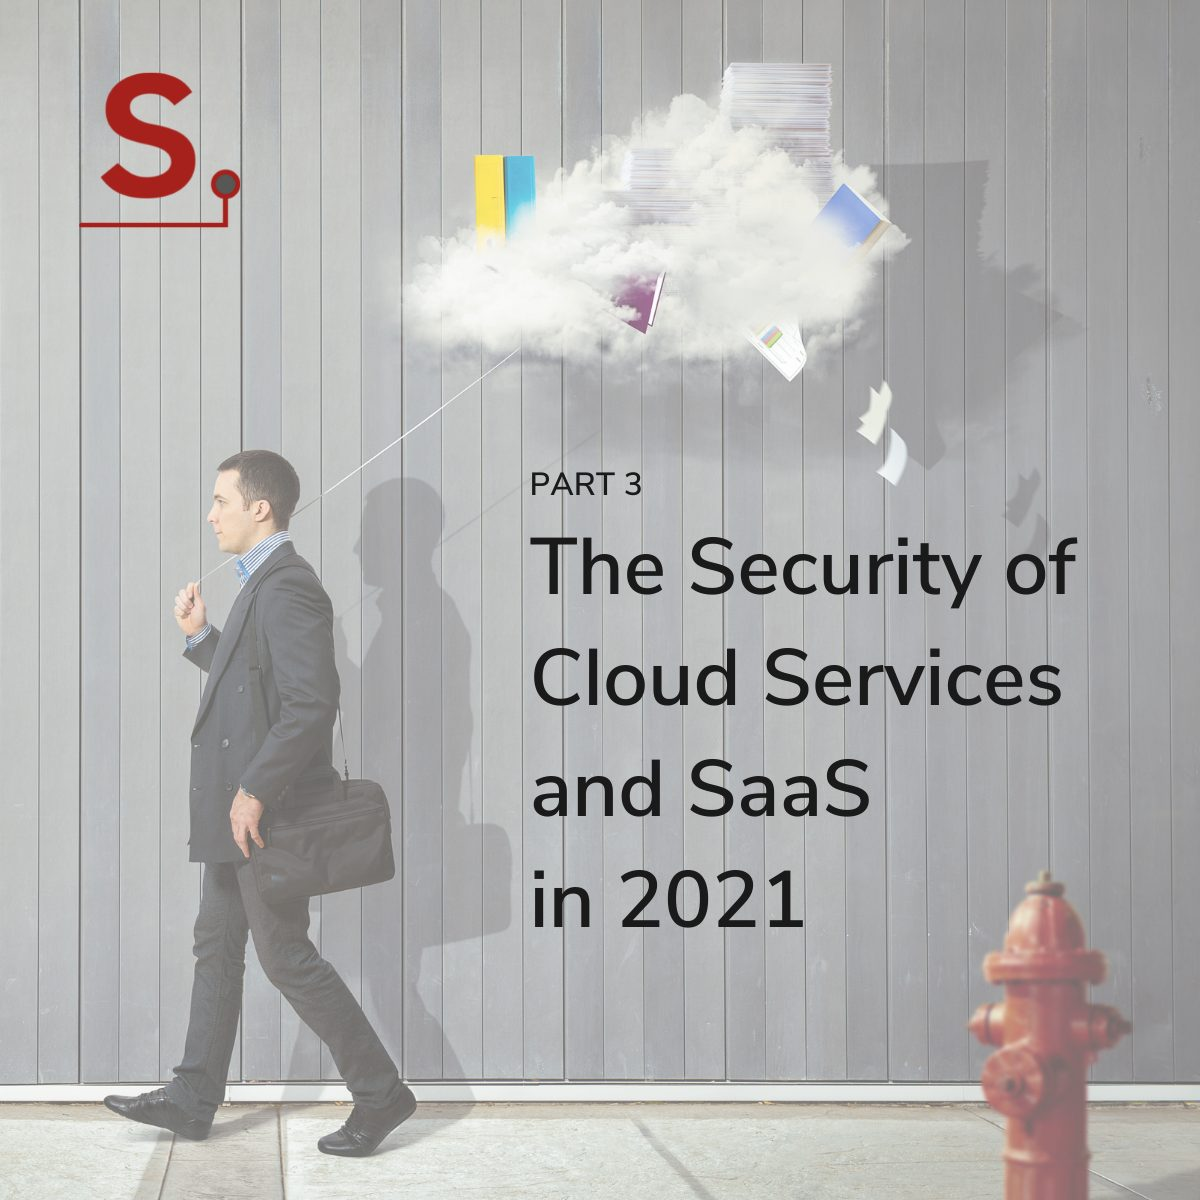 The Security of Cloud Services and SaaS in 2021 – Part 3